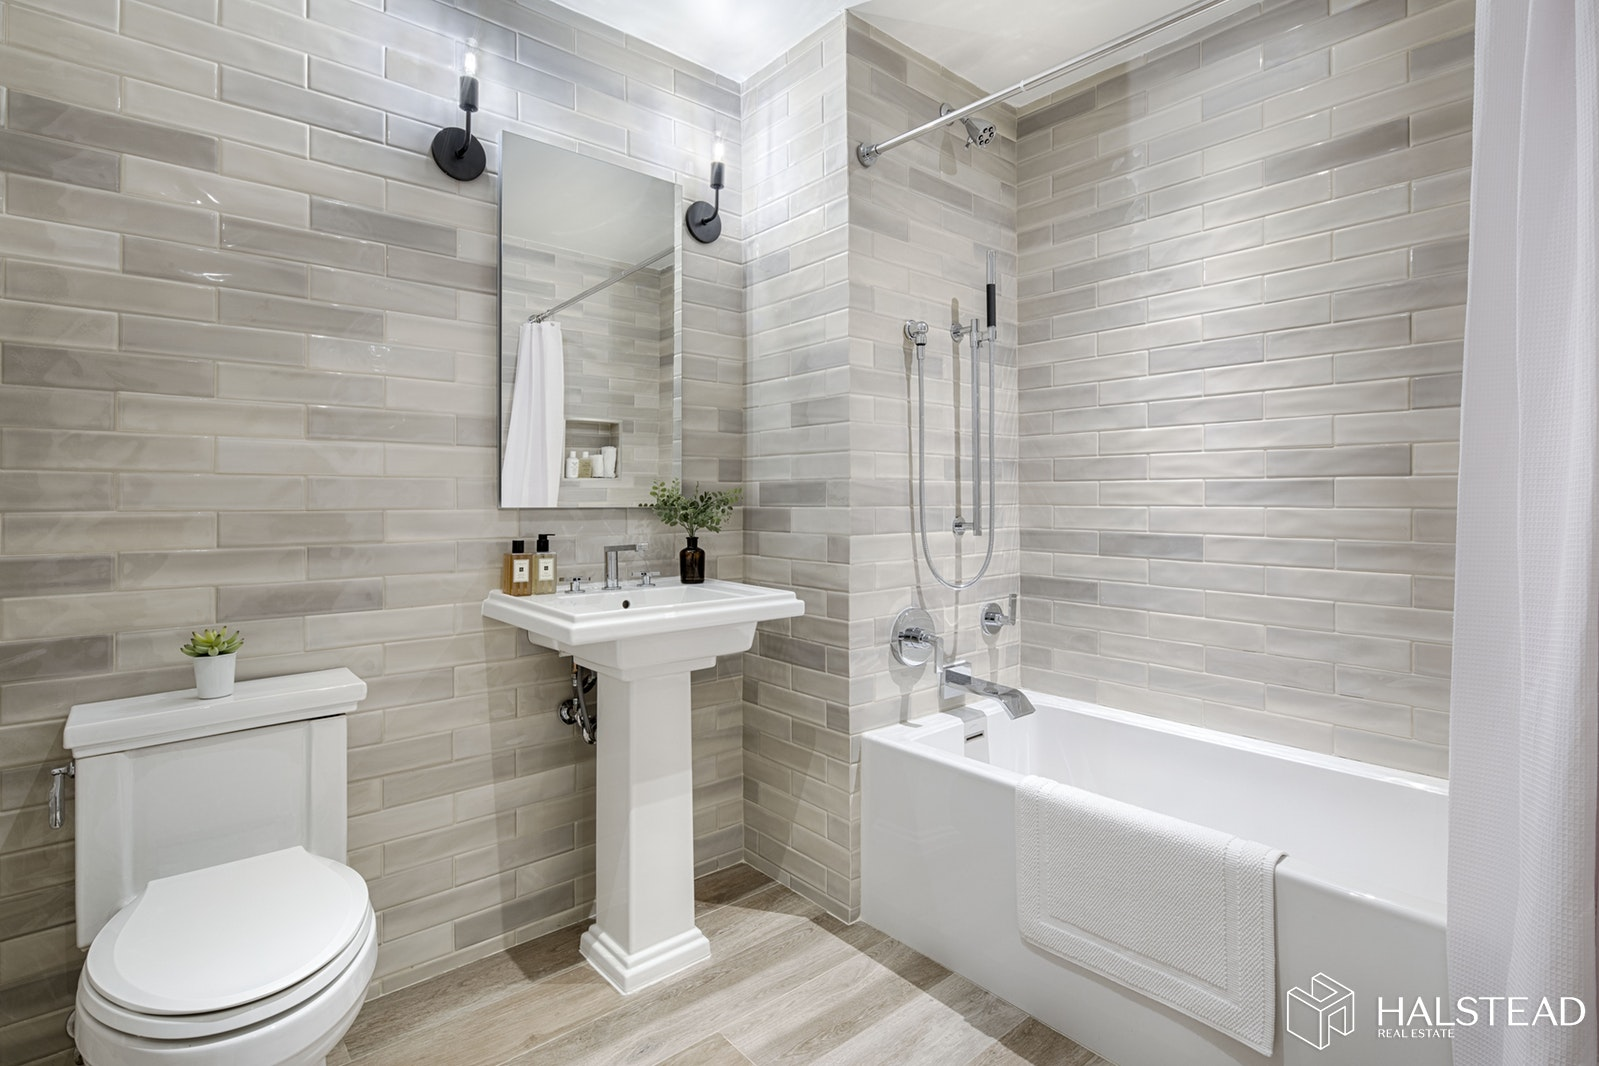 488 Fourth Avenue 3, Park Slope, Brooklyn, NY, 11215, $1,395,000, Property For Sale, Halstead Real Estate, Photo 10